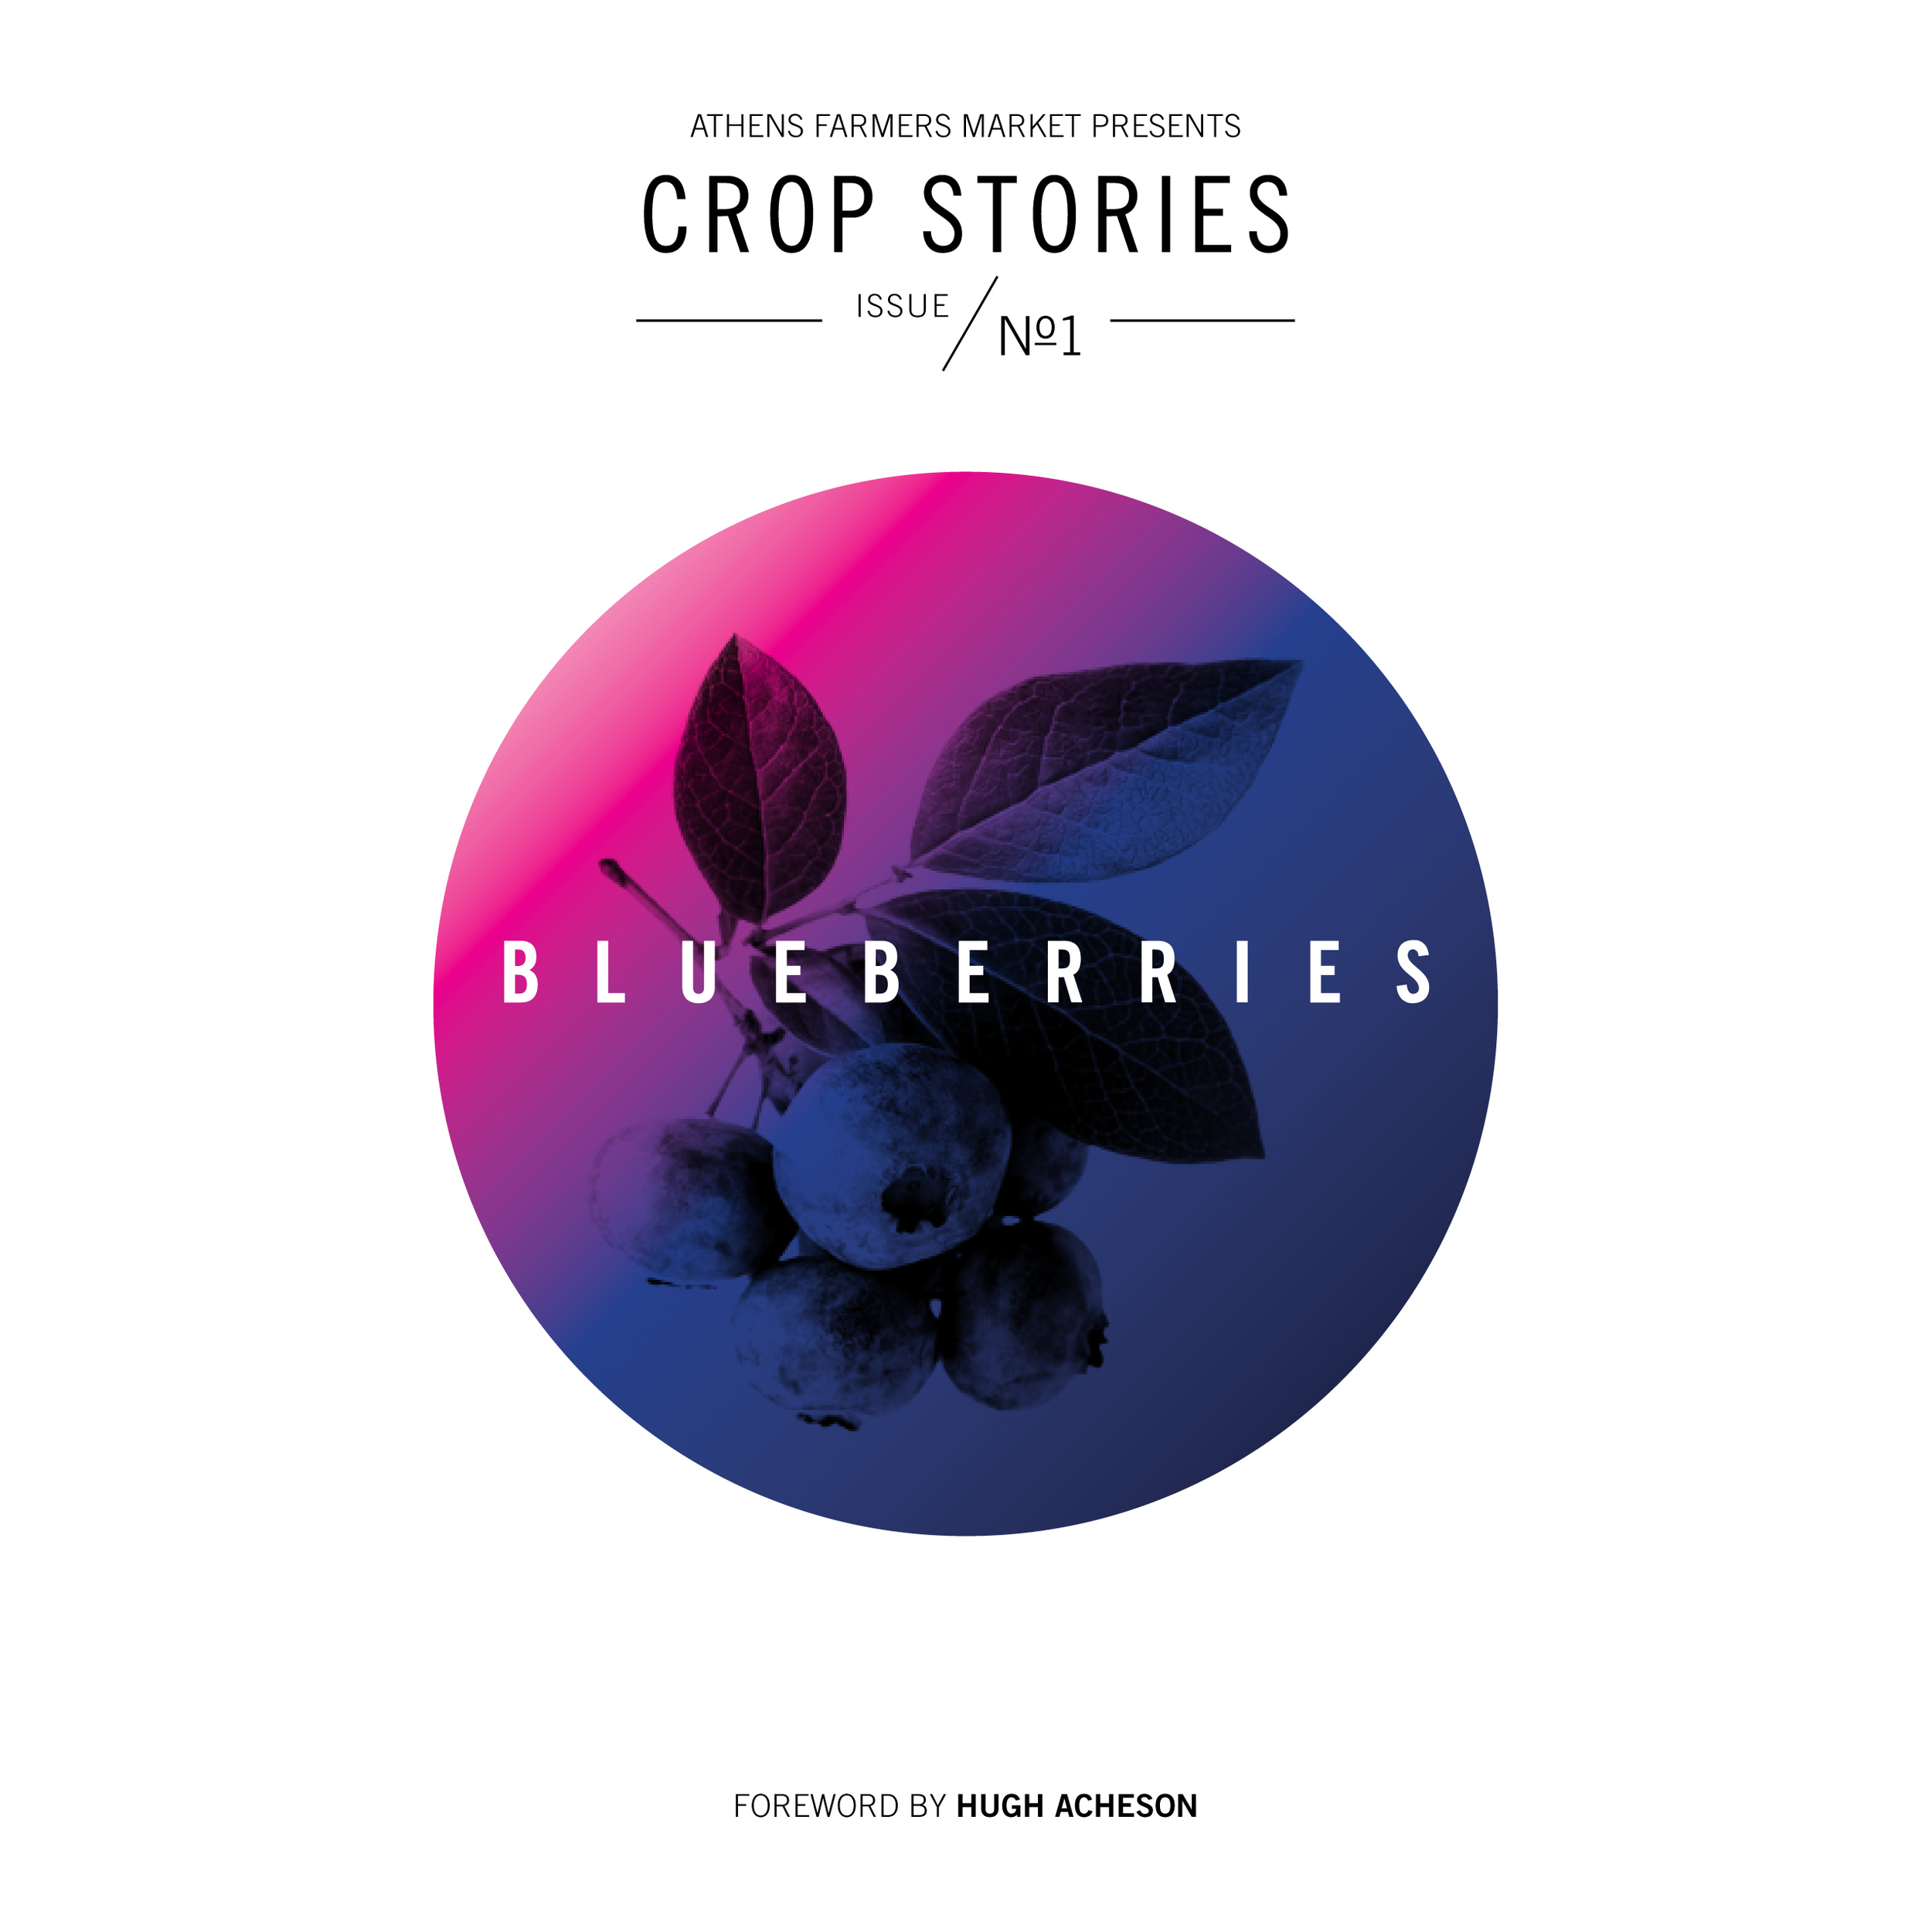 cropstories_blueberries_square_cover.jpg